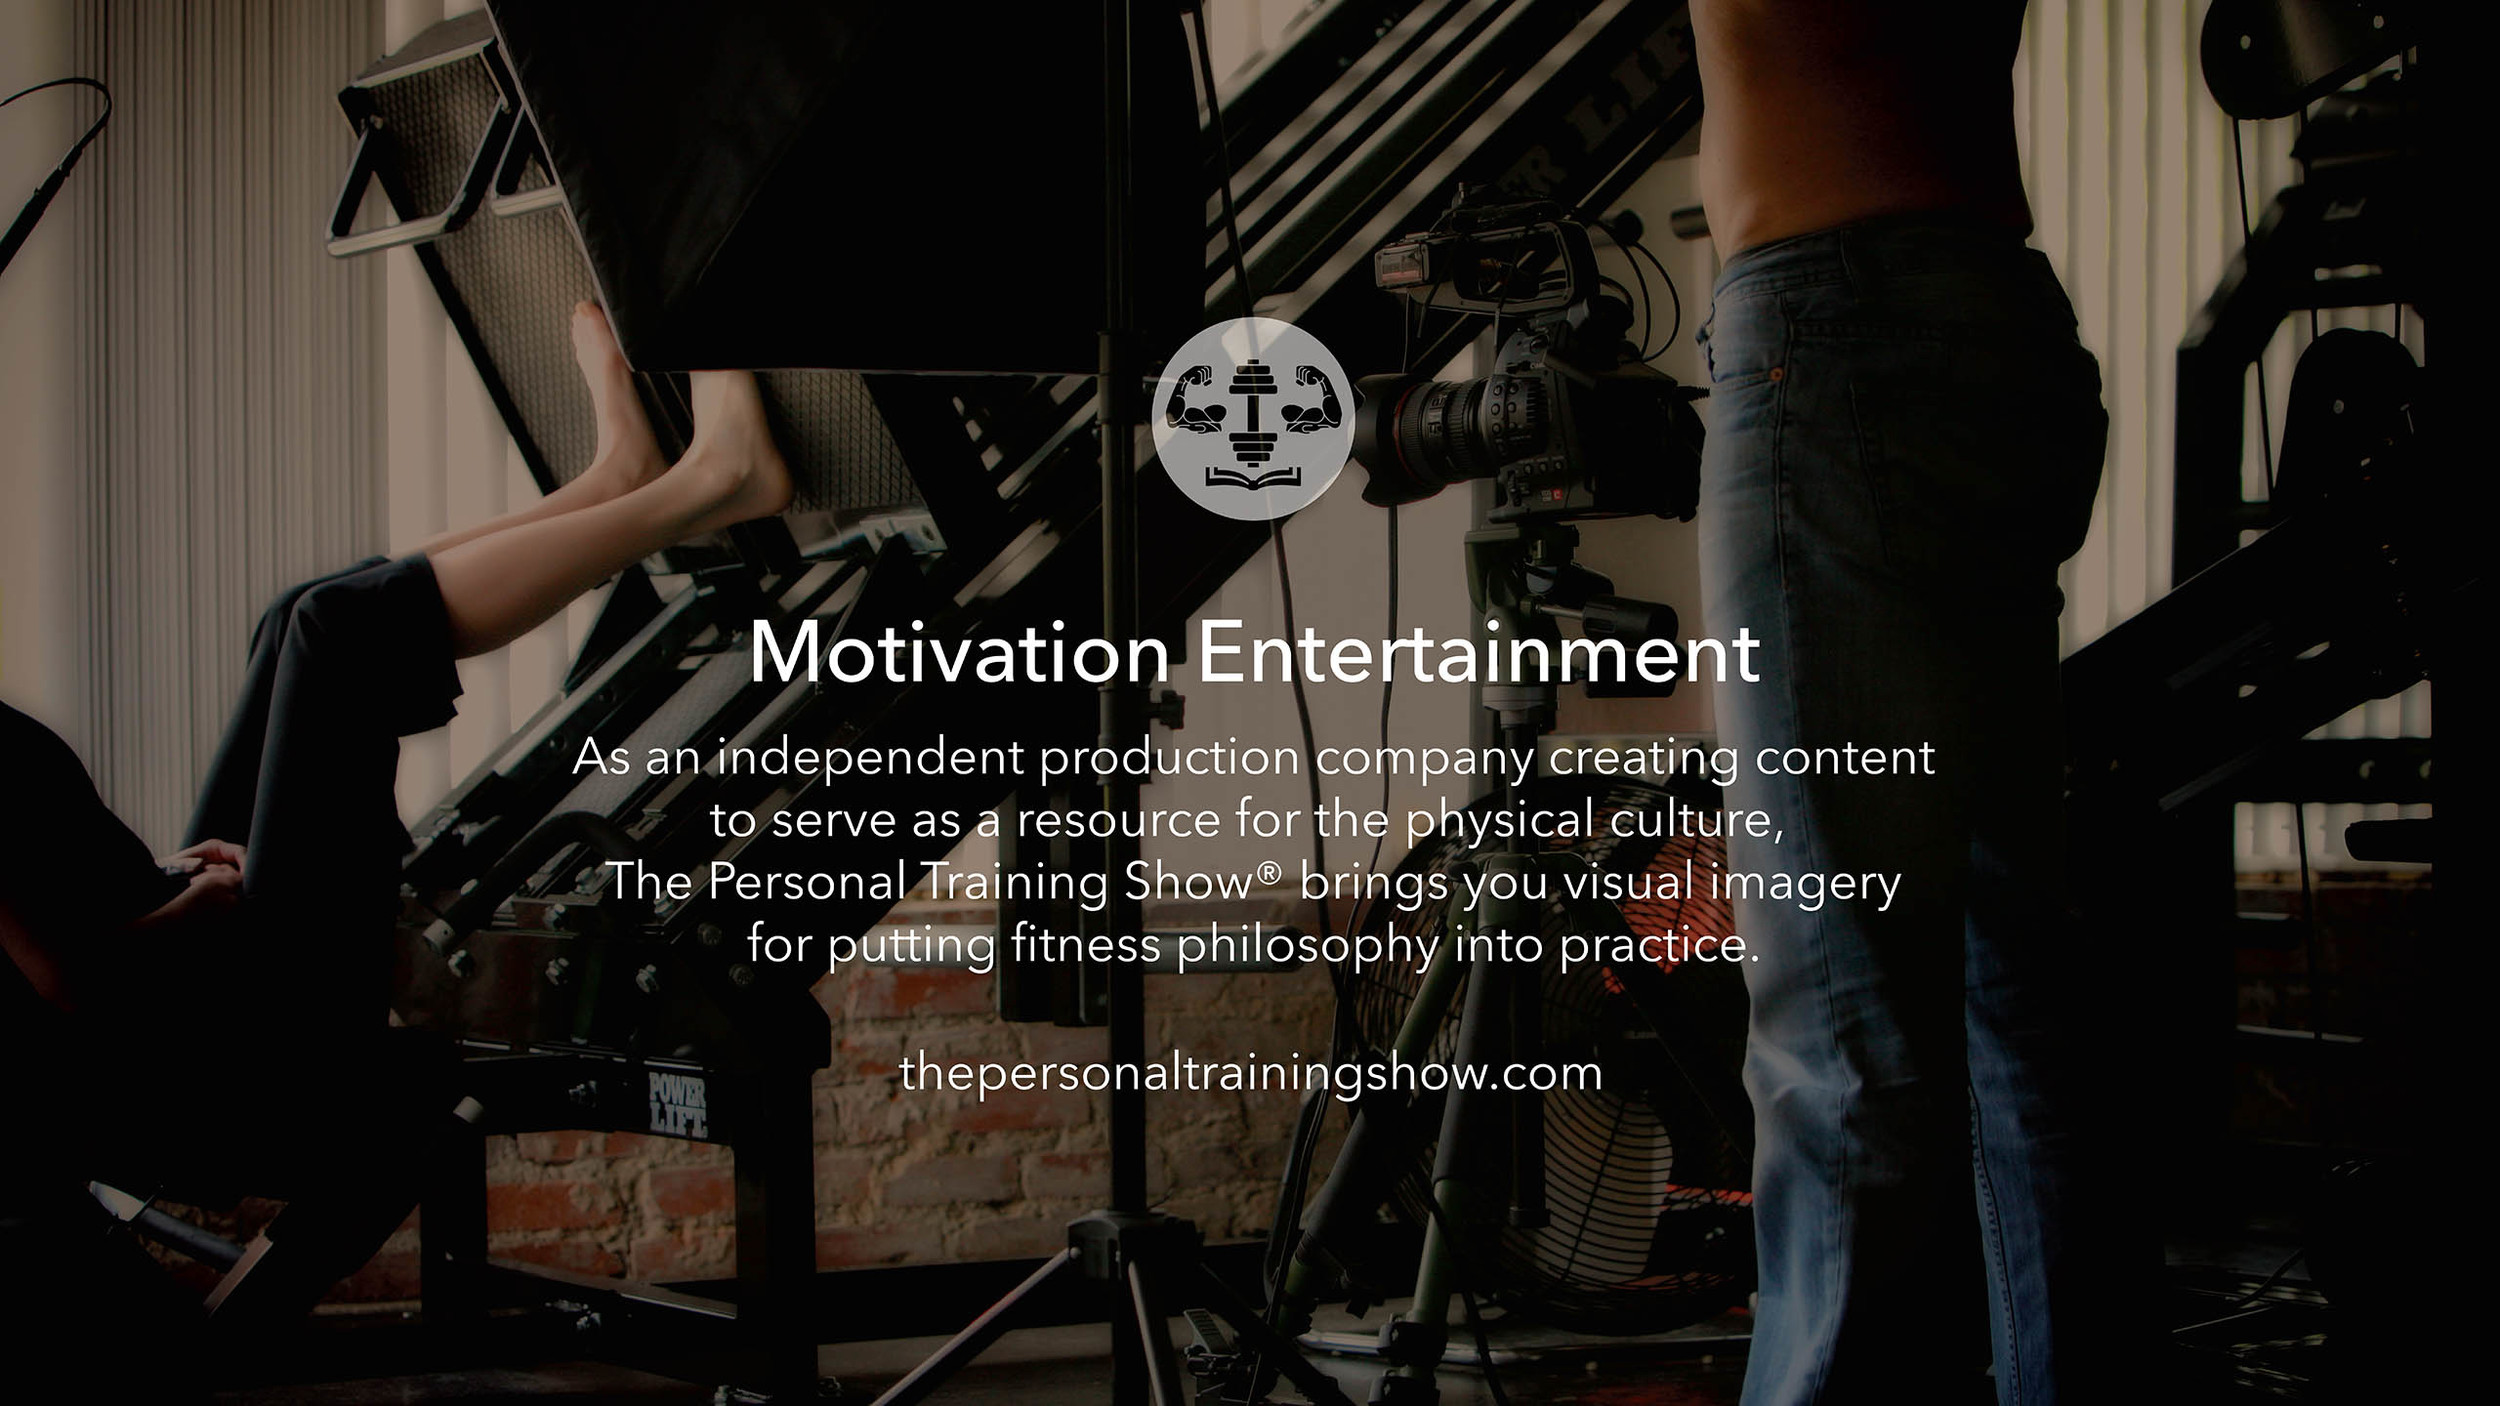 Motivation Entertainment